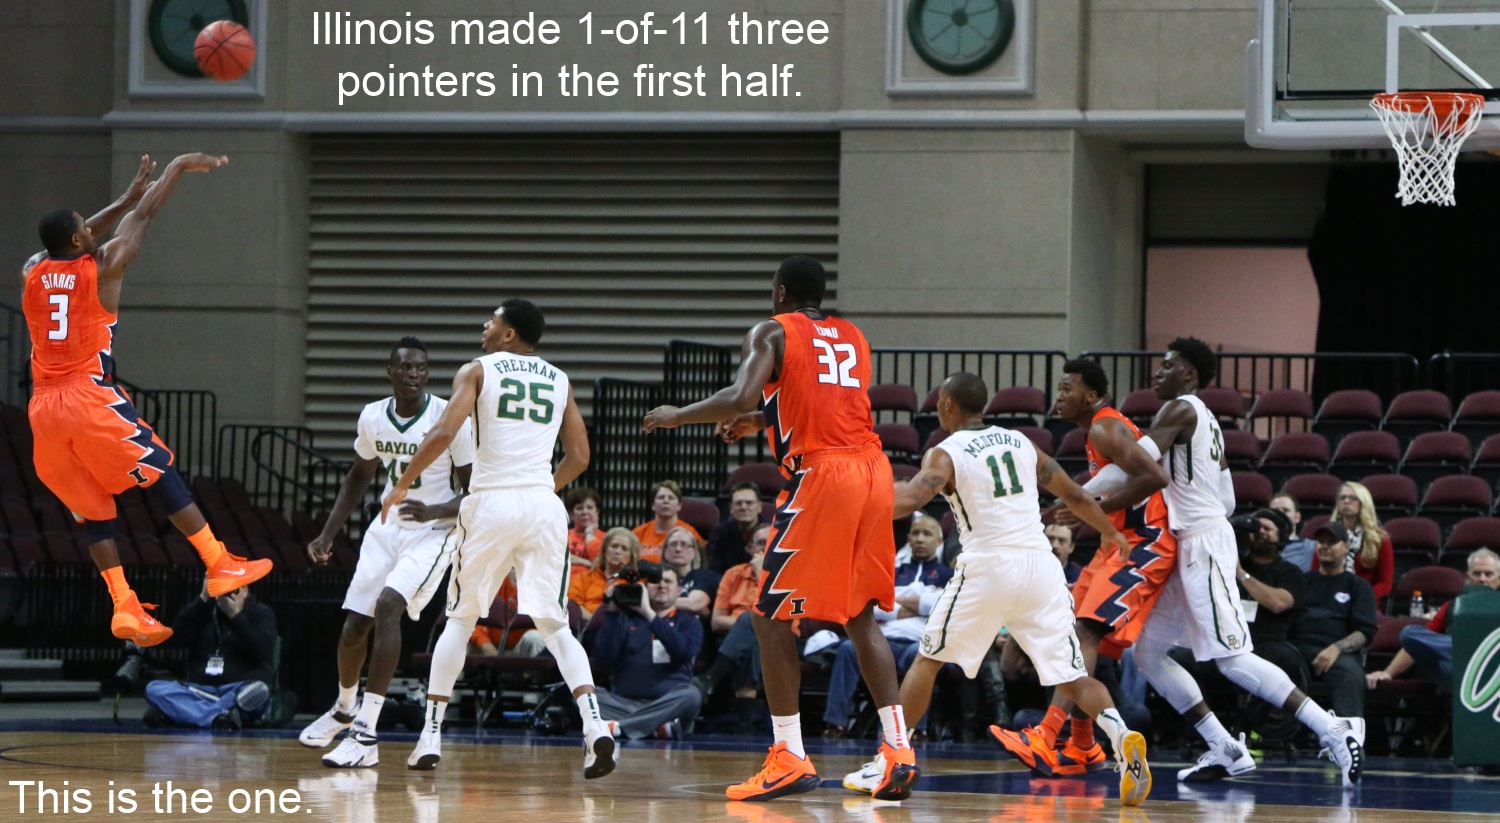 Illinois 1 for 11 one threes